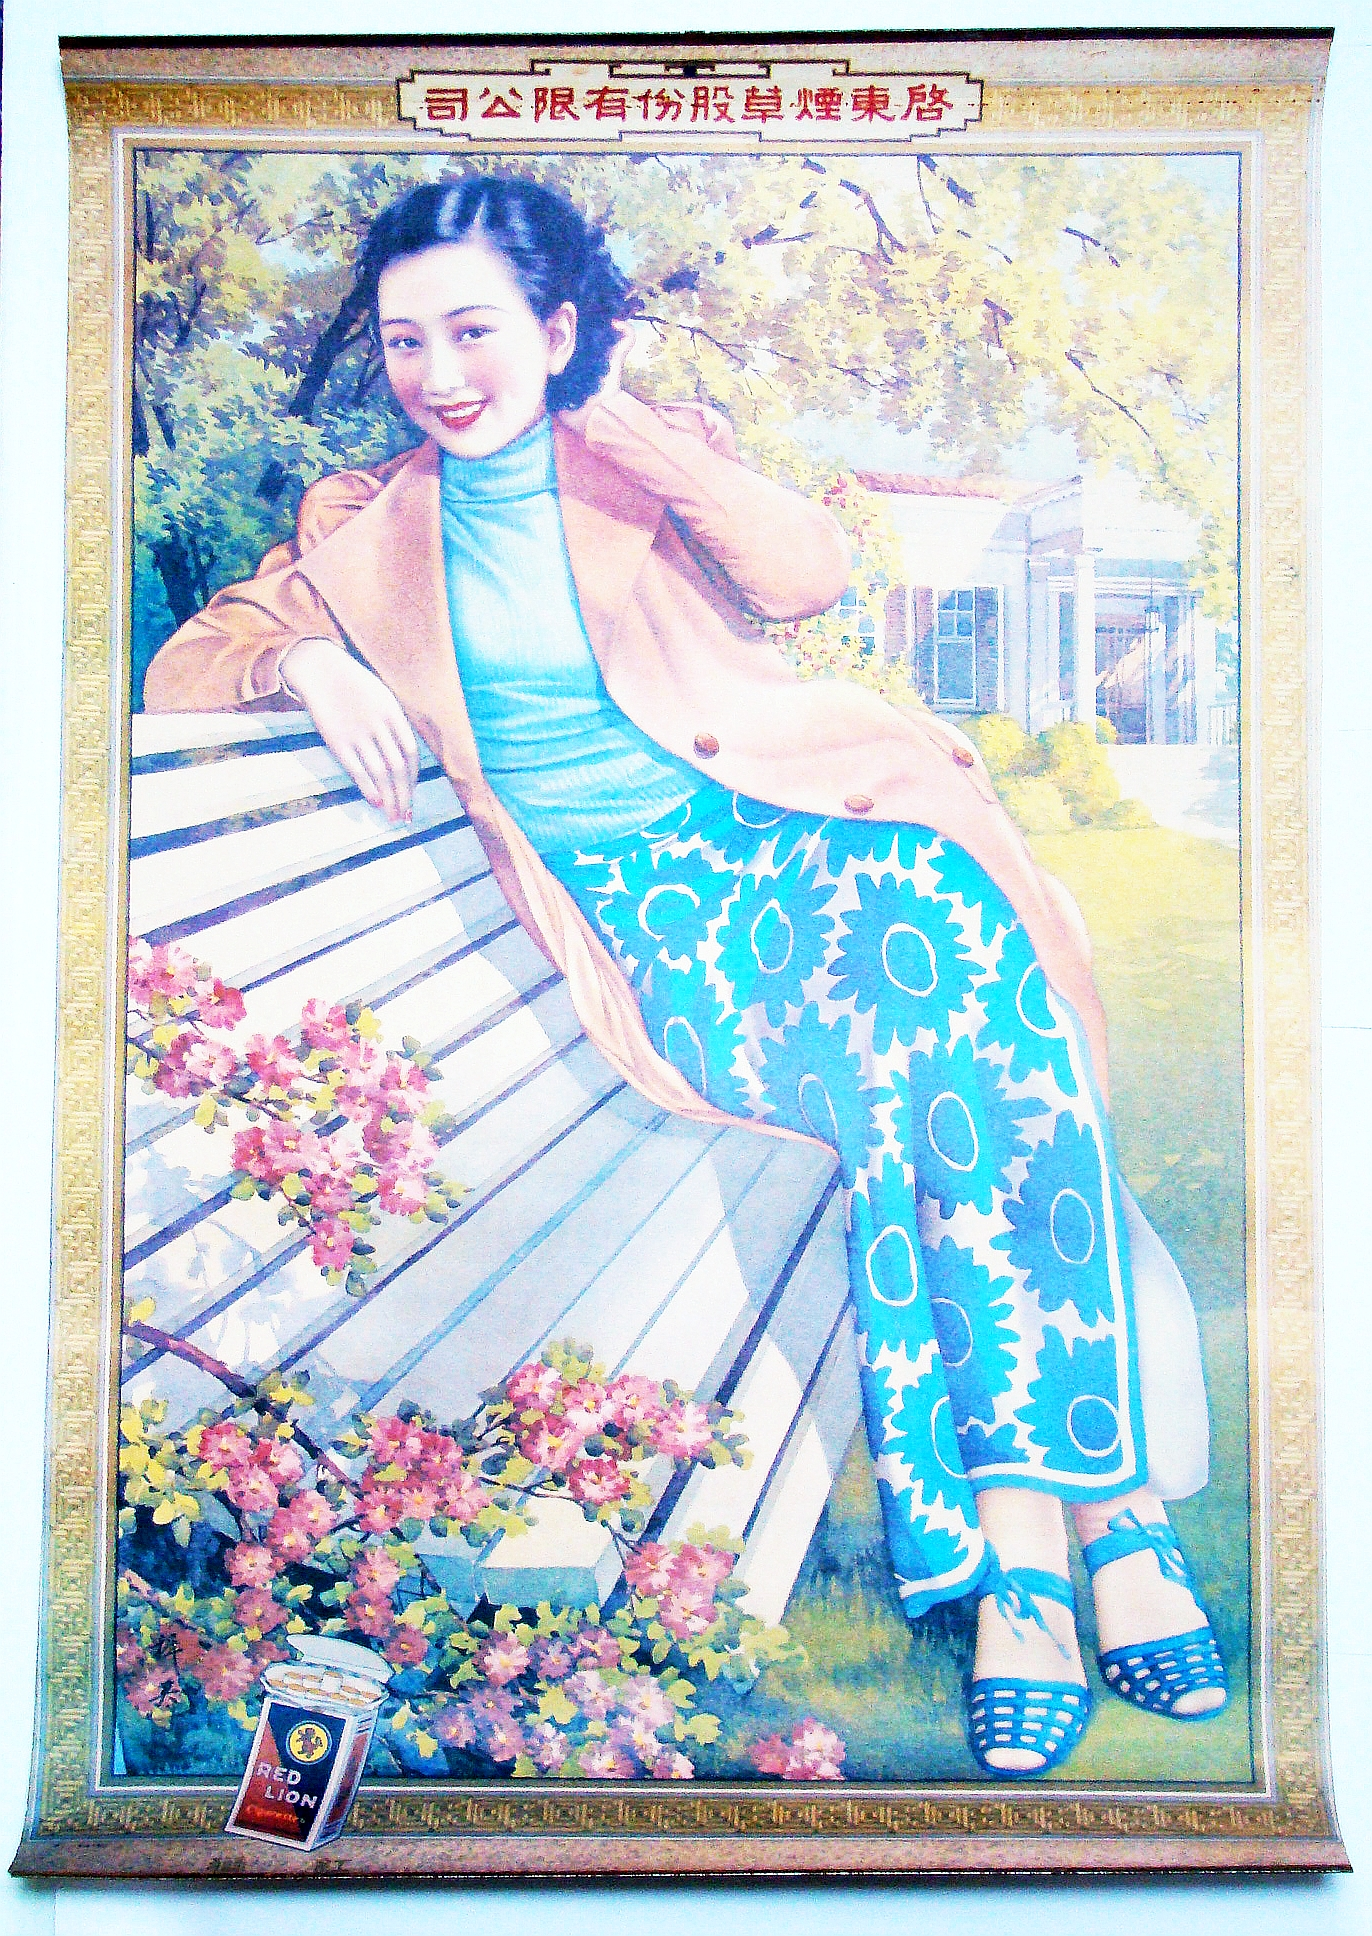 Image for Chinese / Shanghai Replica Red Lion Cigarette Advertising Poster Featuring Young Lovely in Blue Dress on Bench